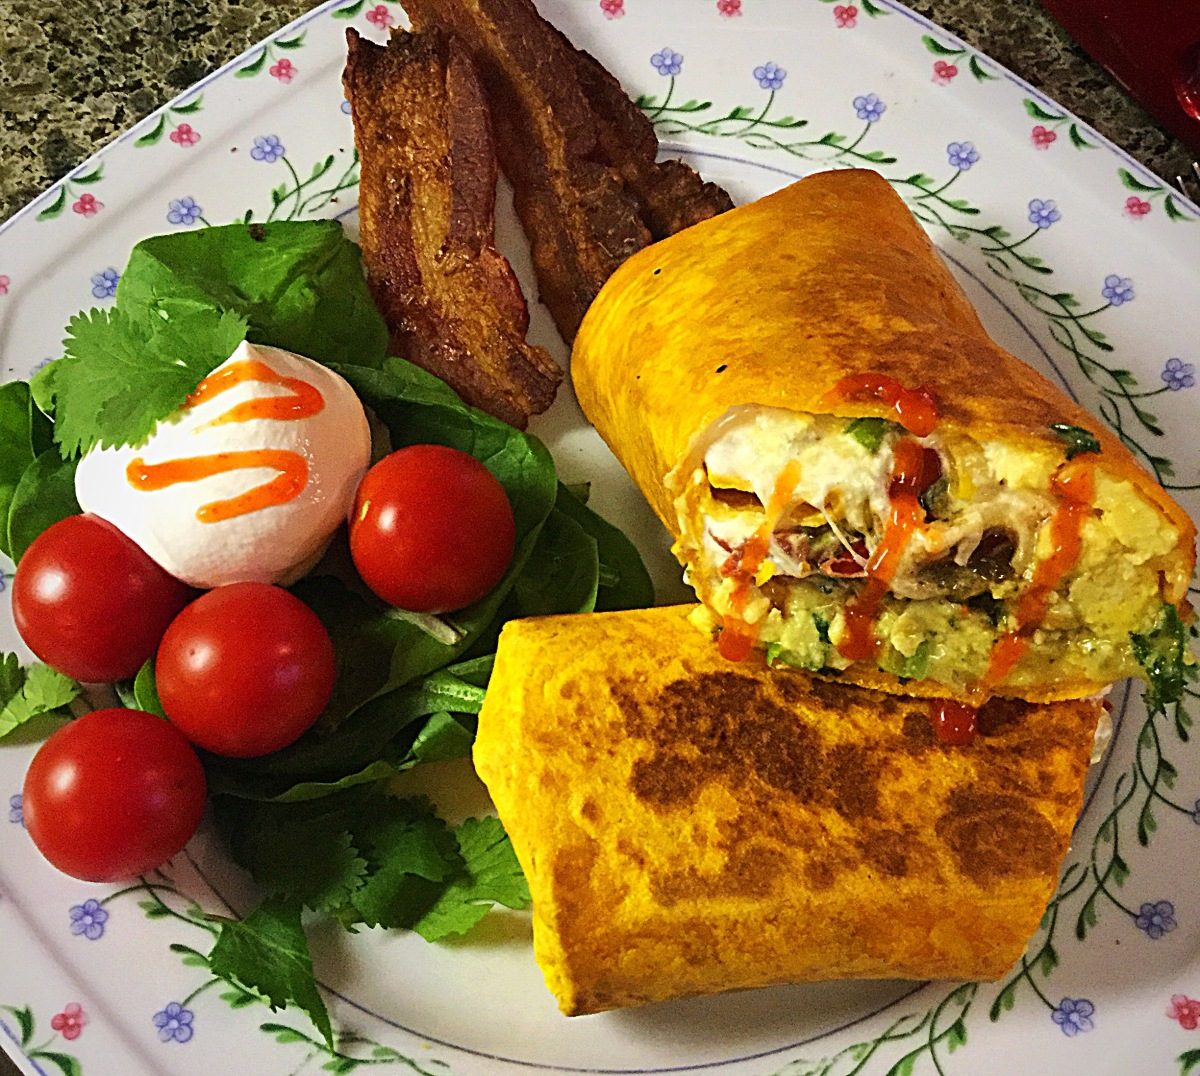 Breakfast Burritos ala Bobbe. My first video.